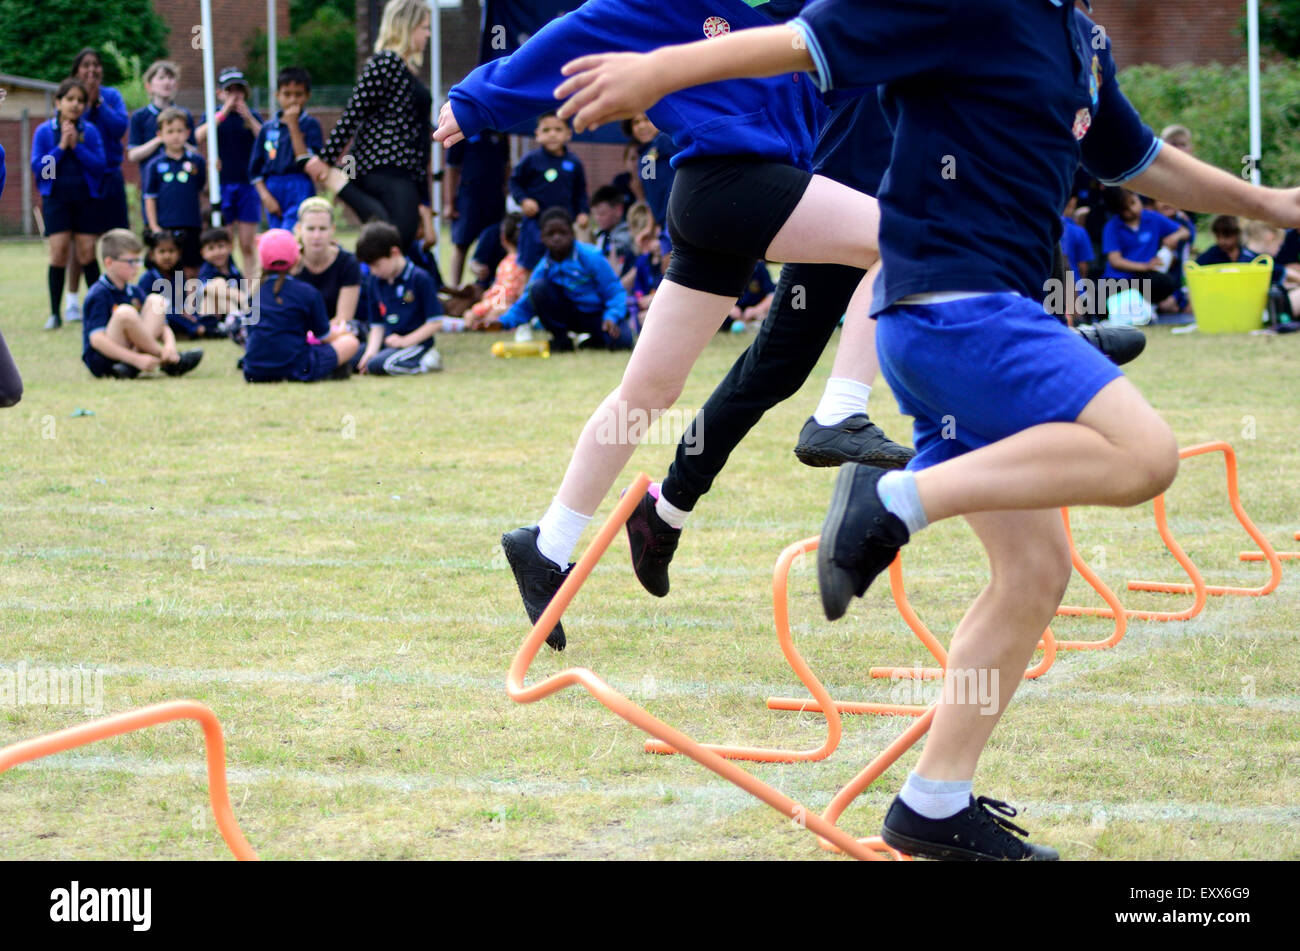 The hurdles race at a primary school sports day. - Stock Image